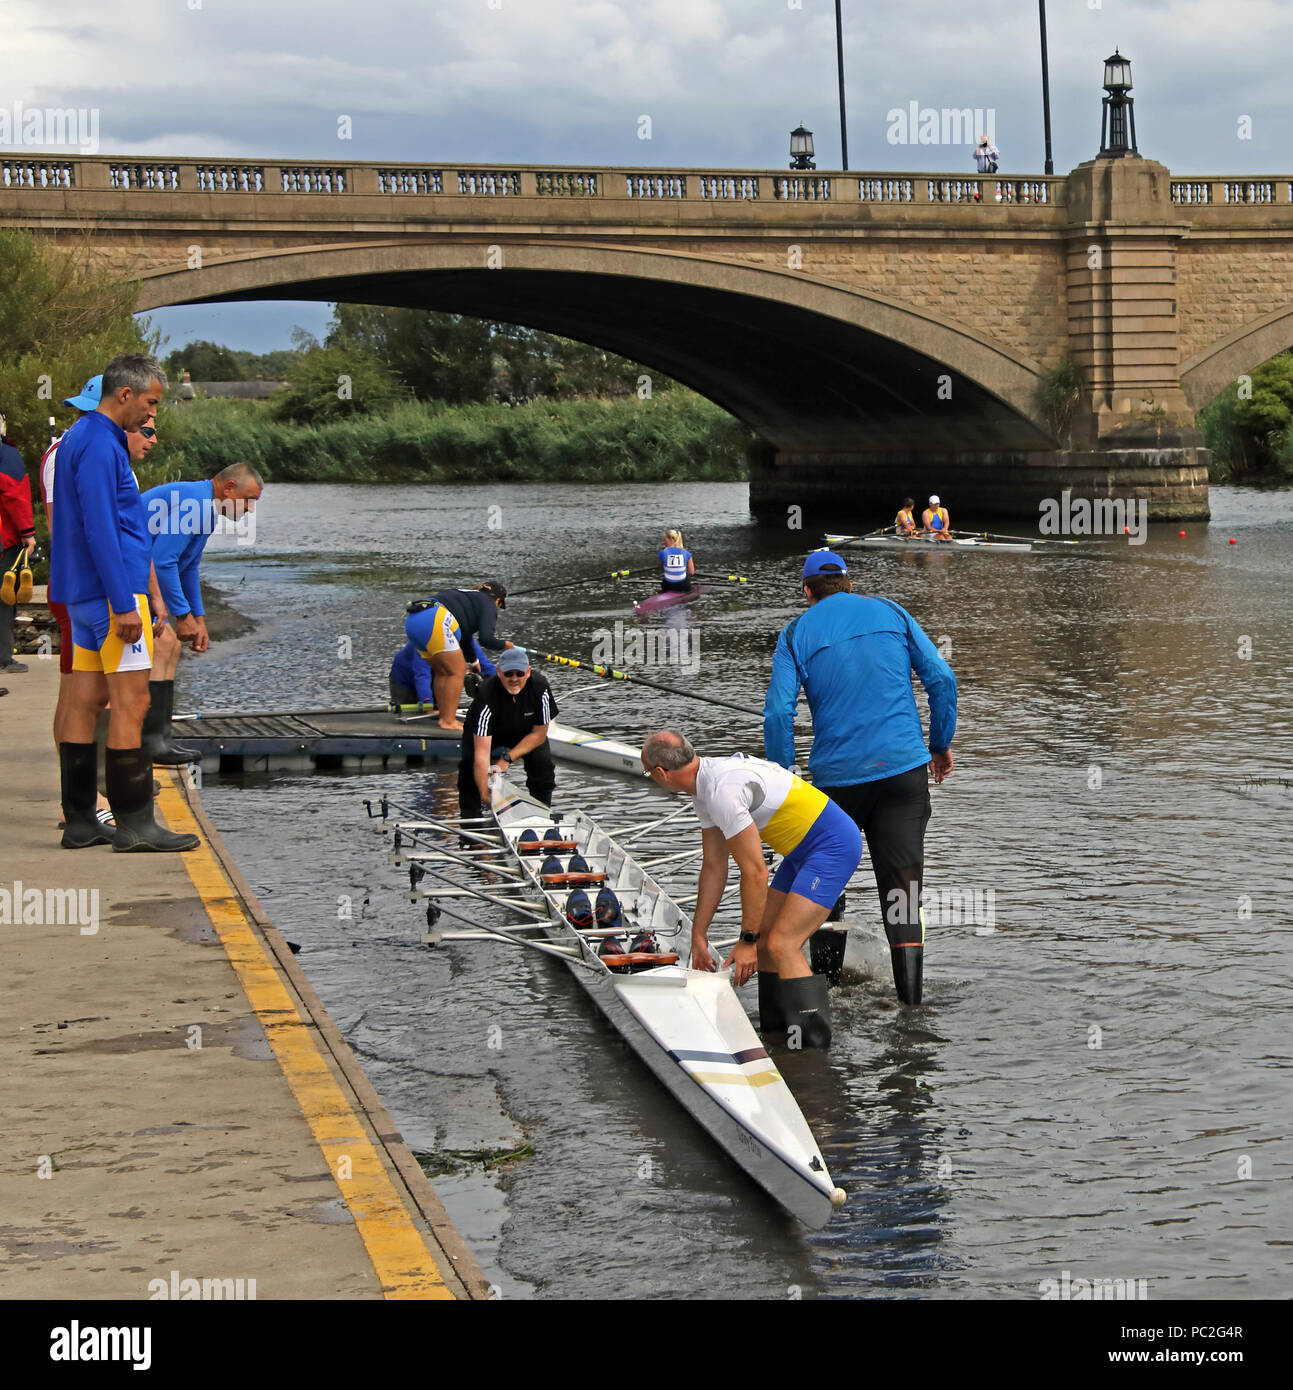 Launching a quad, at Warrington Rowing Club 2018 Summer regatta, Howley lane, Mersey River, Cheshire, North West England, UK - Stock Image